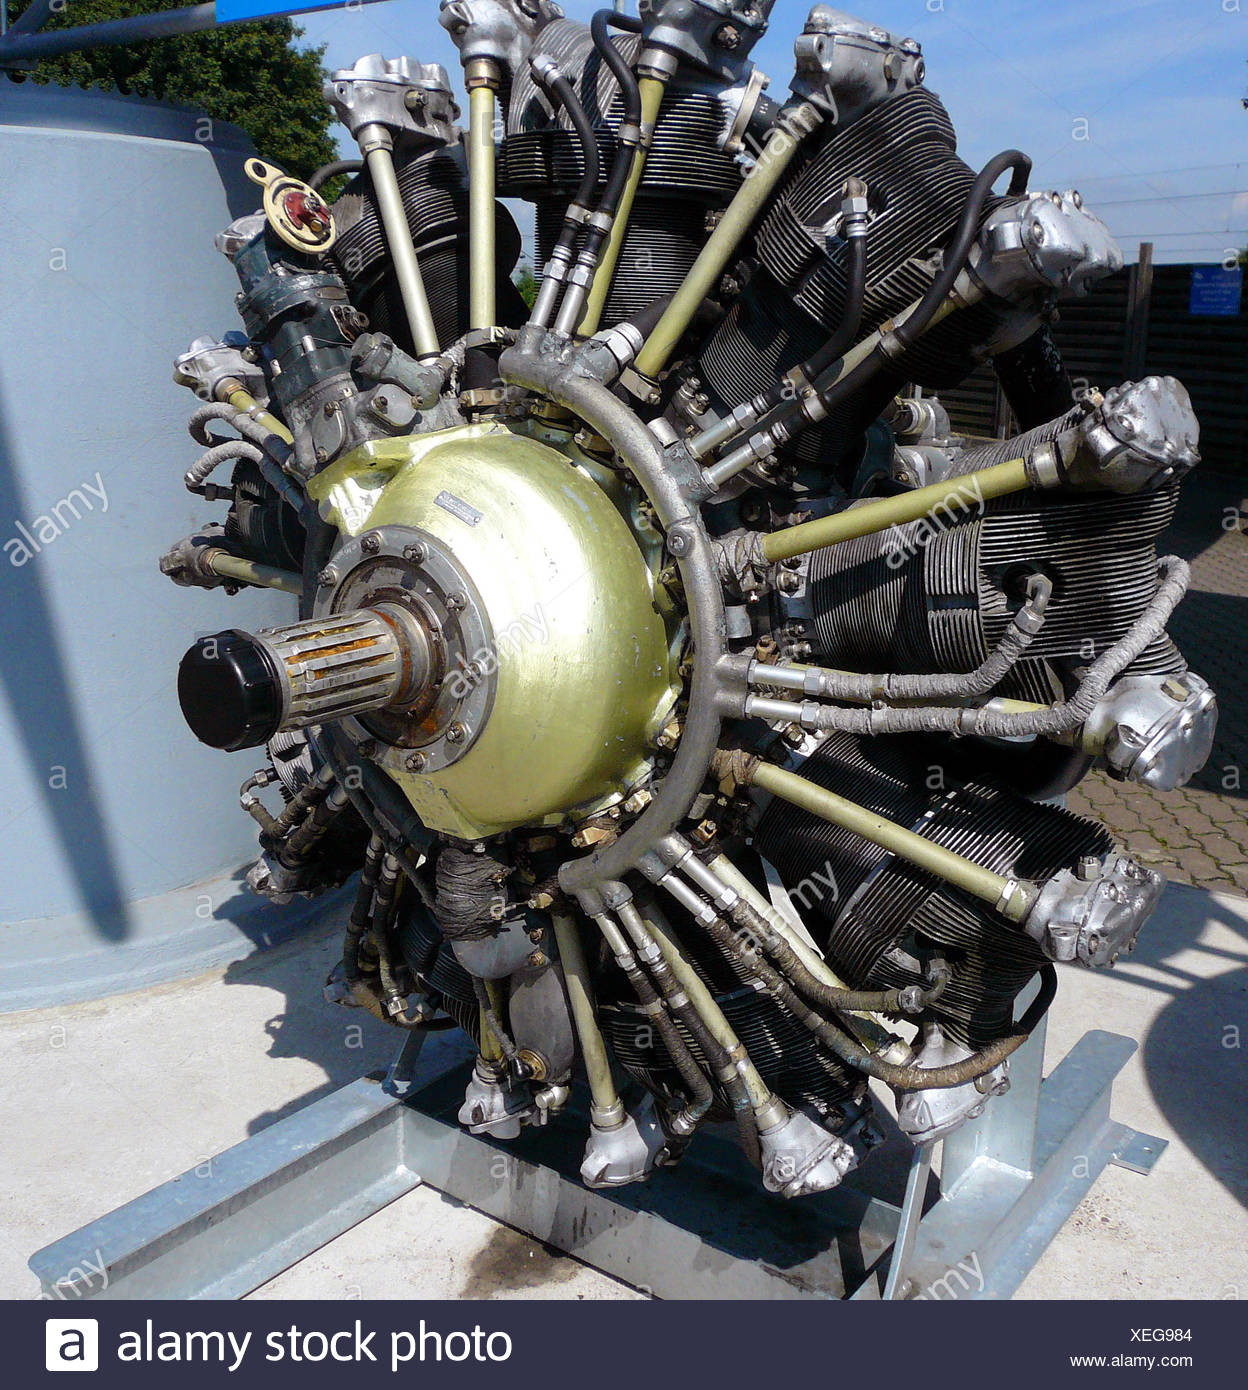 Radial EngineStock Photos and Images